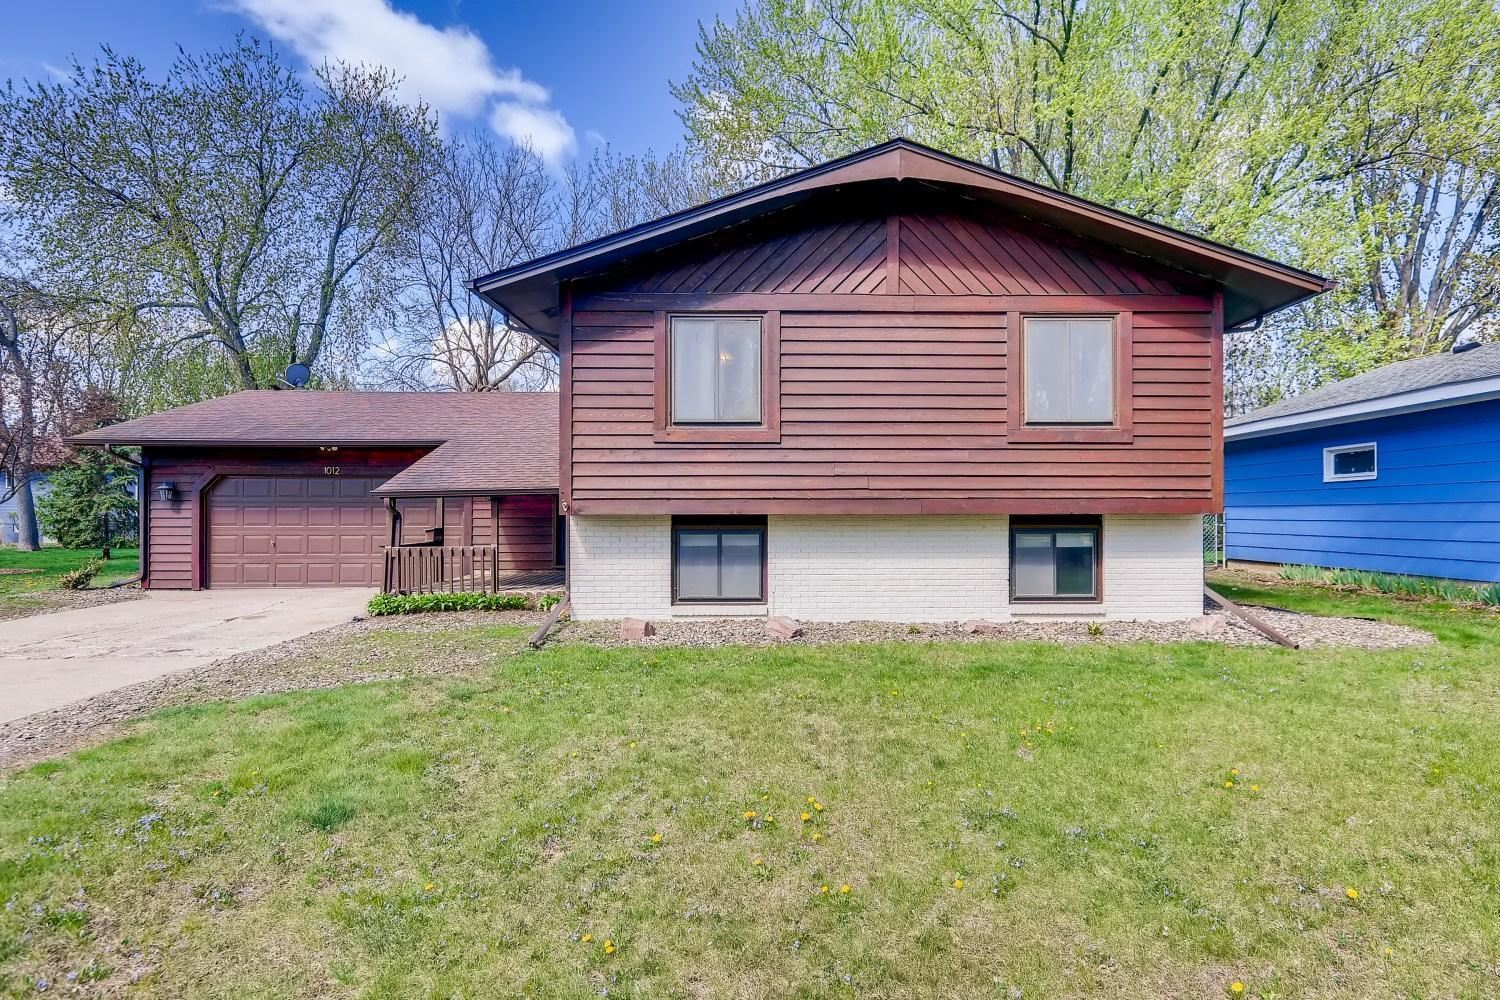 Photo of 1012 2nd Street, Farmington, MN 55024 (MLS # 5732586)